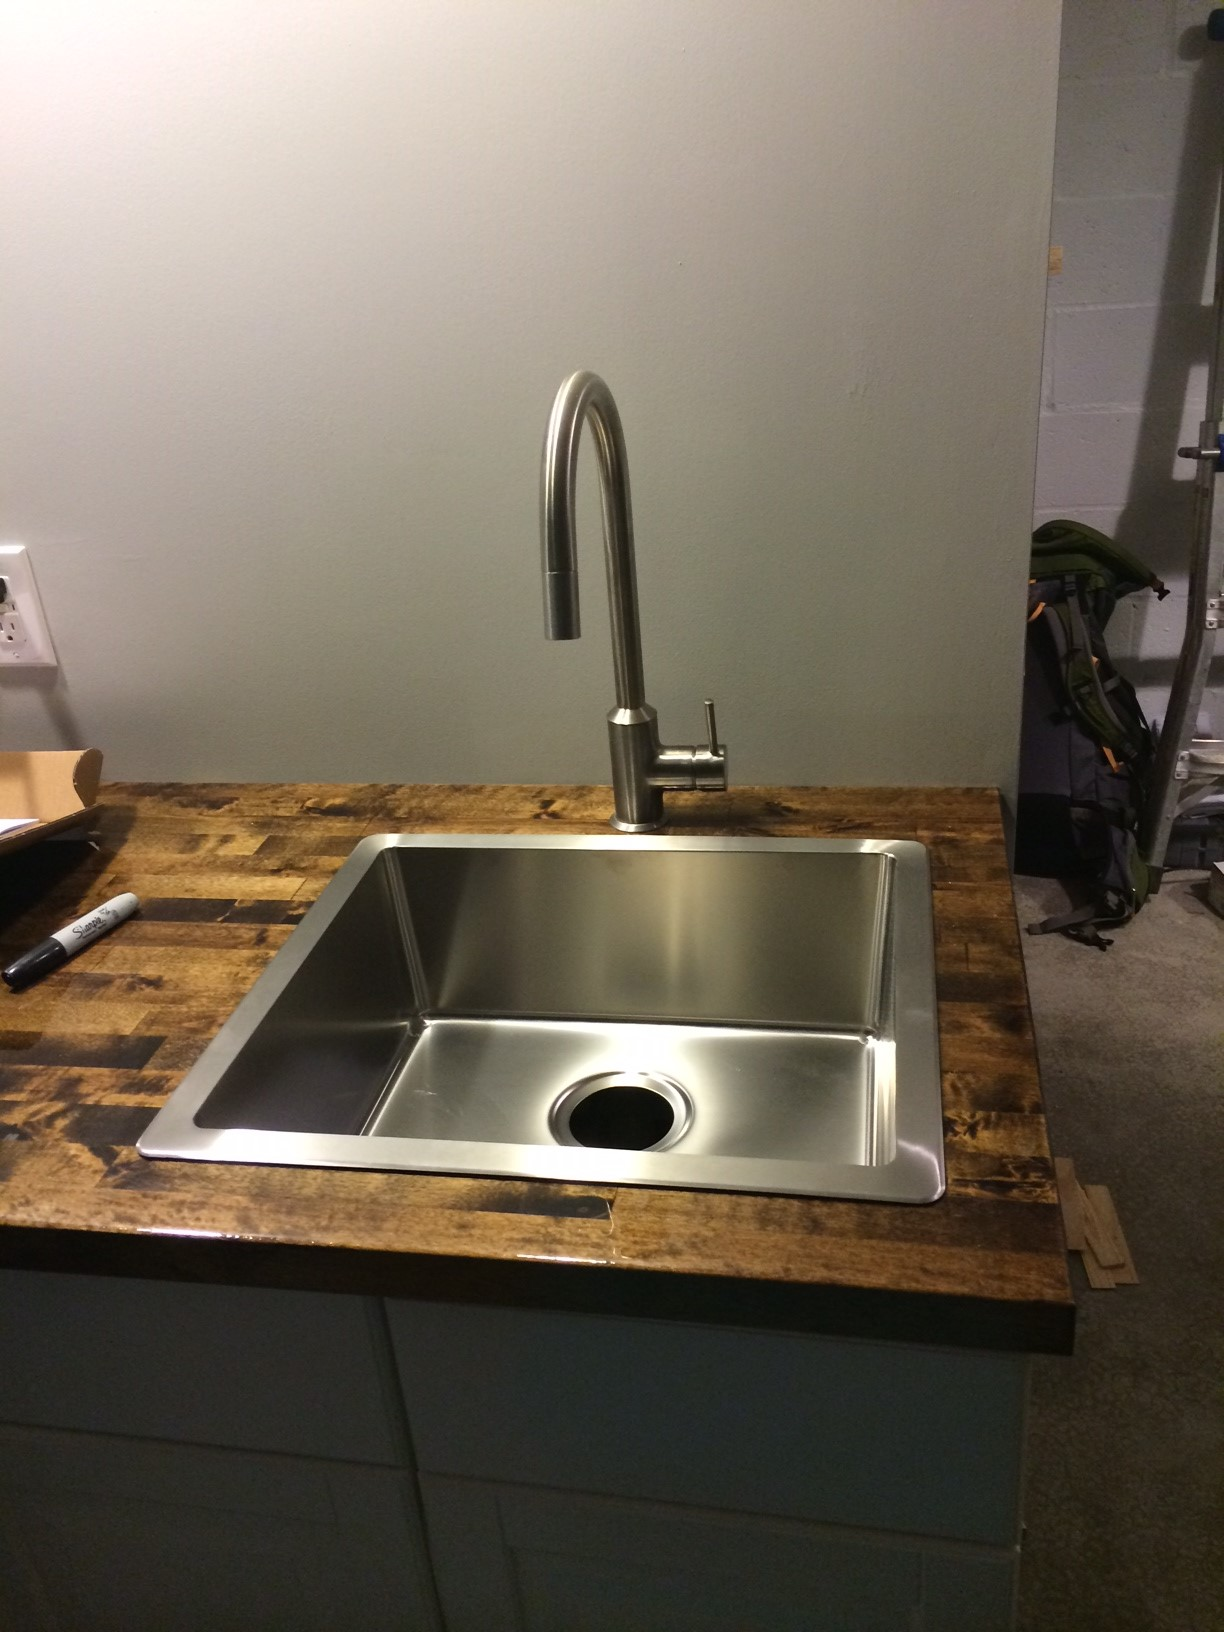 We got to work a bit more on our cabinets and got the kitchen sink placed